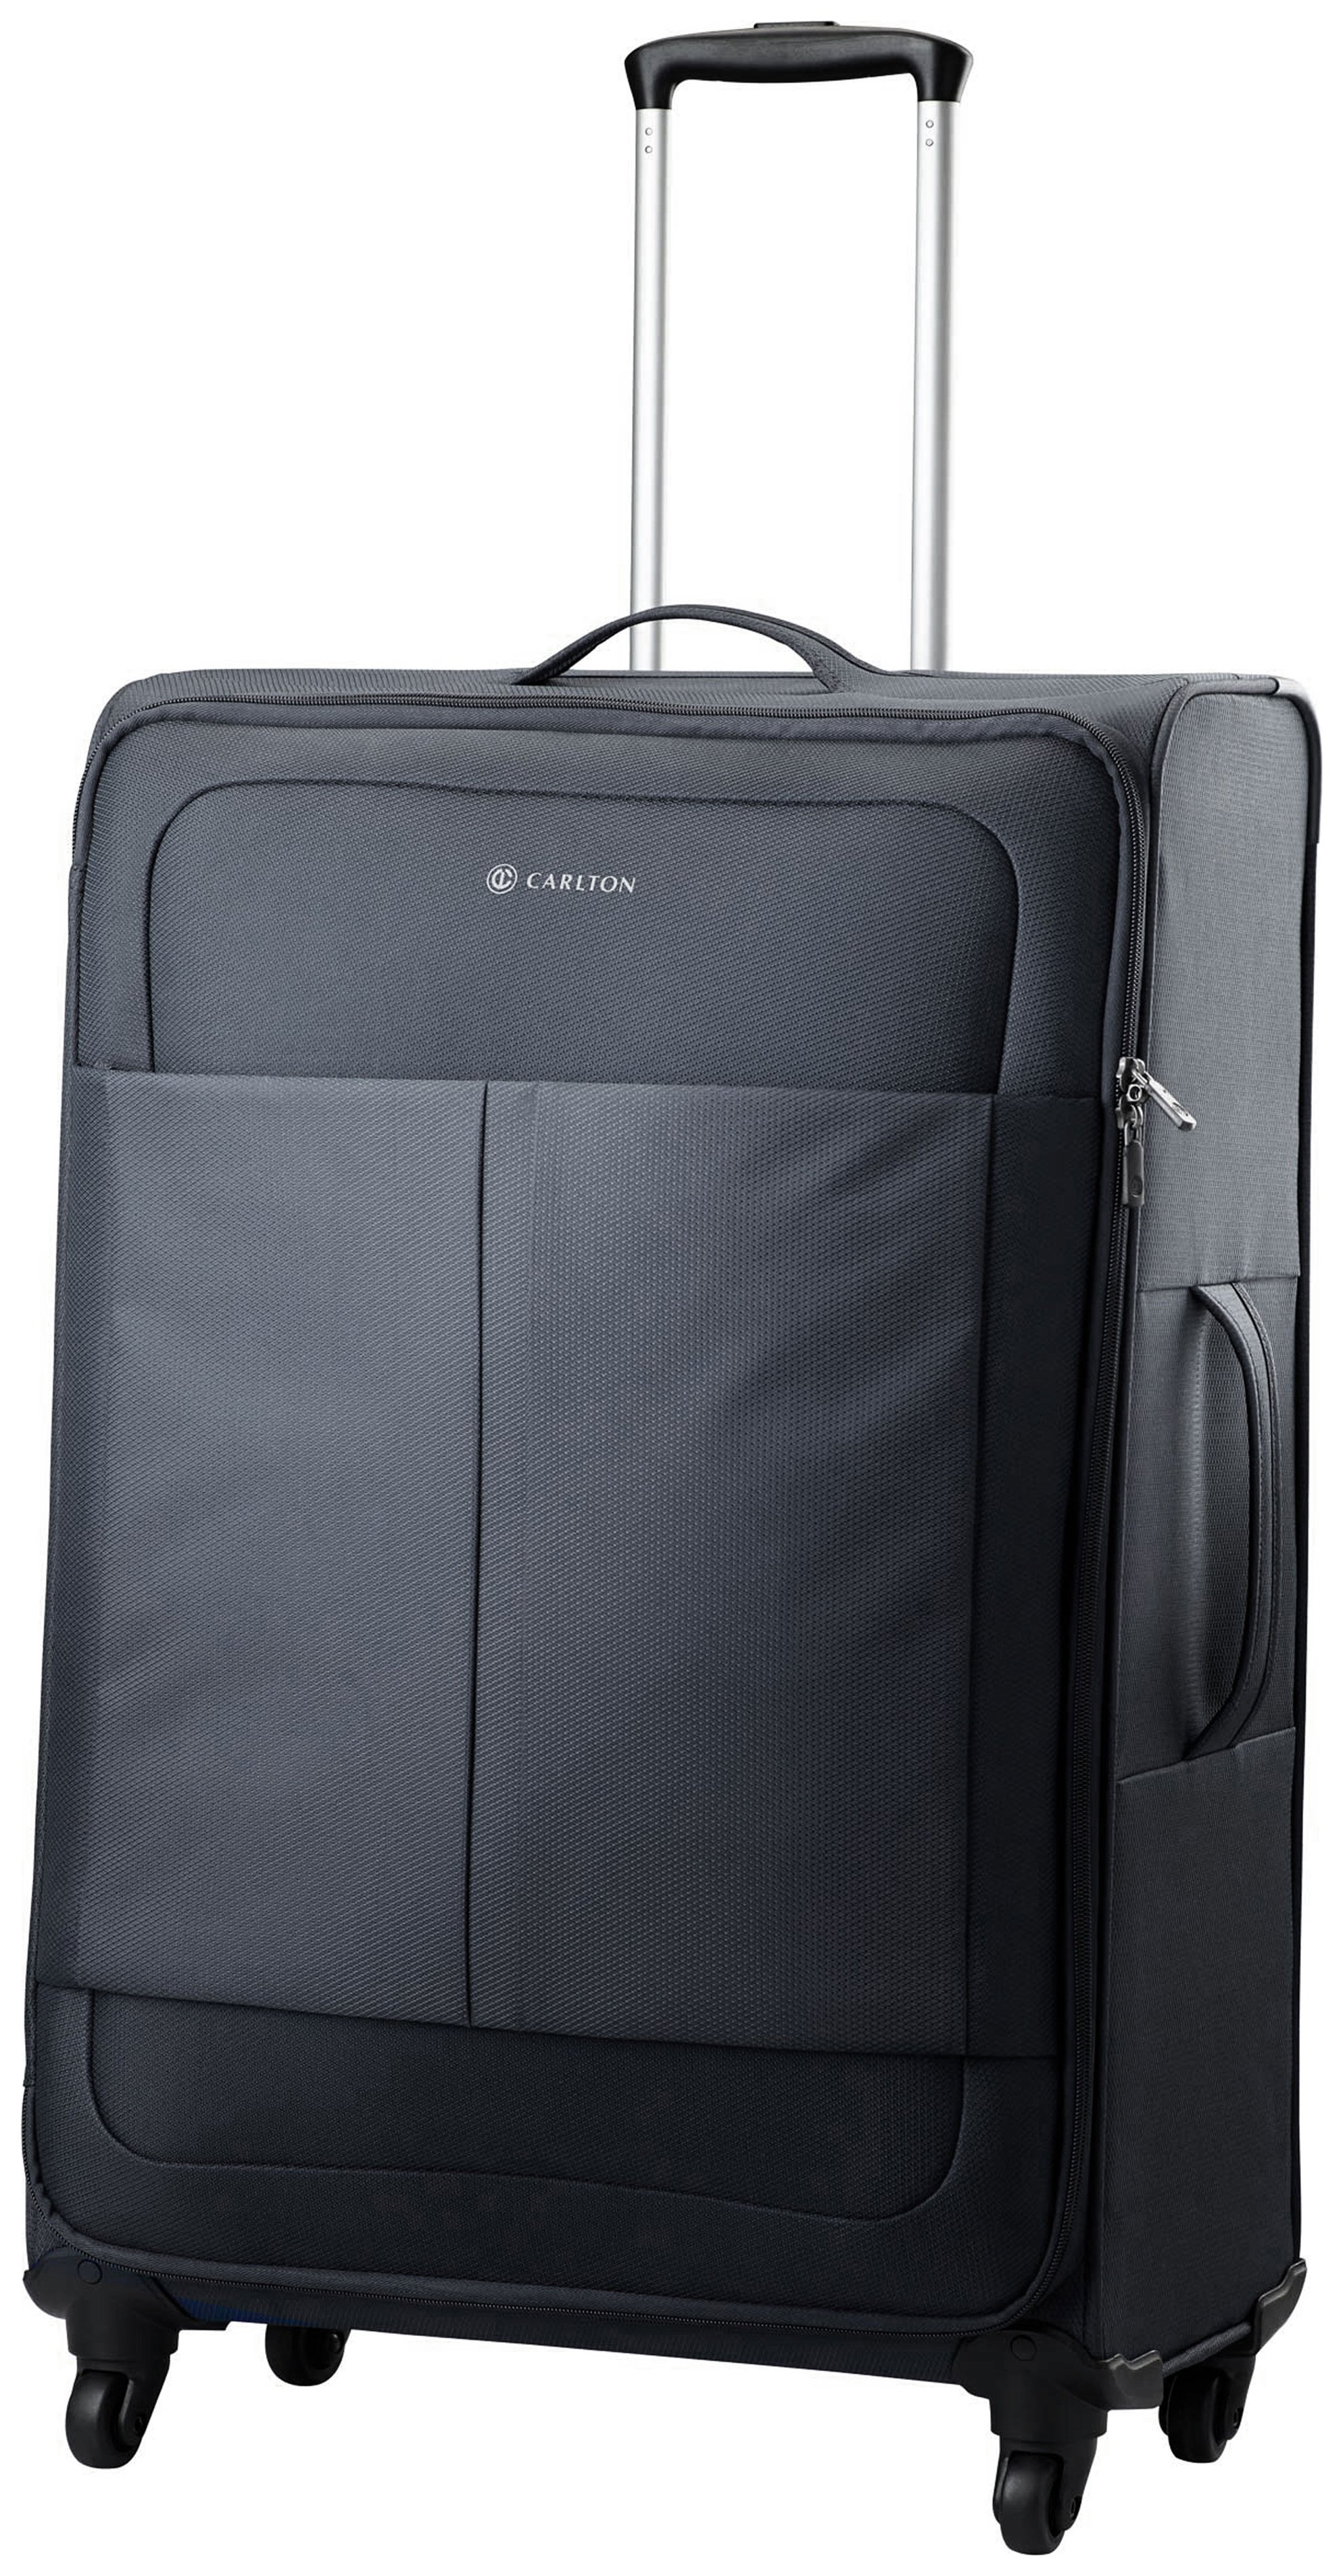 Image of Carlton - Ultralite Large 4 Wheel Soft Suitcase - Black